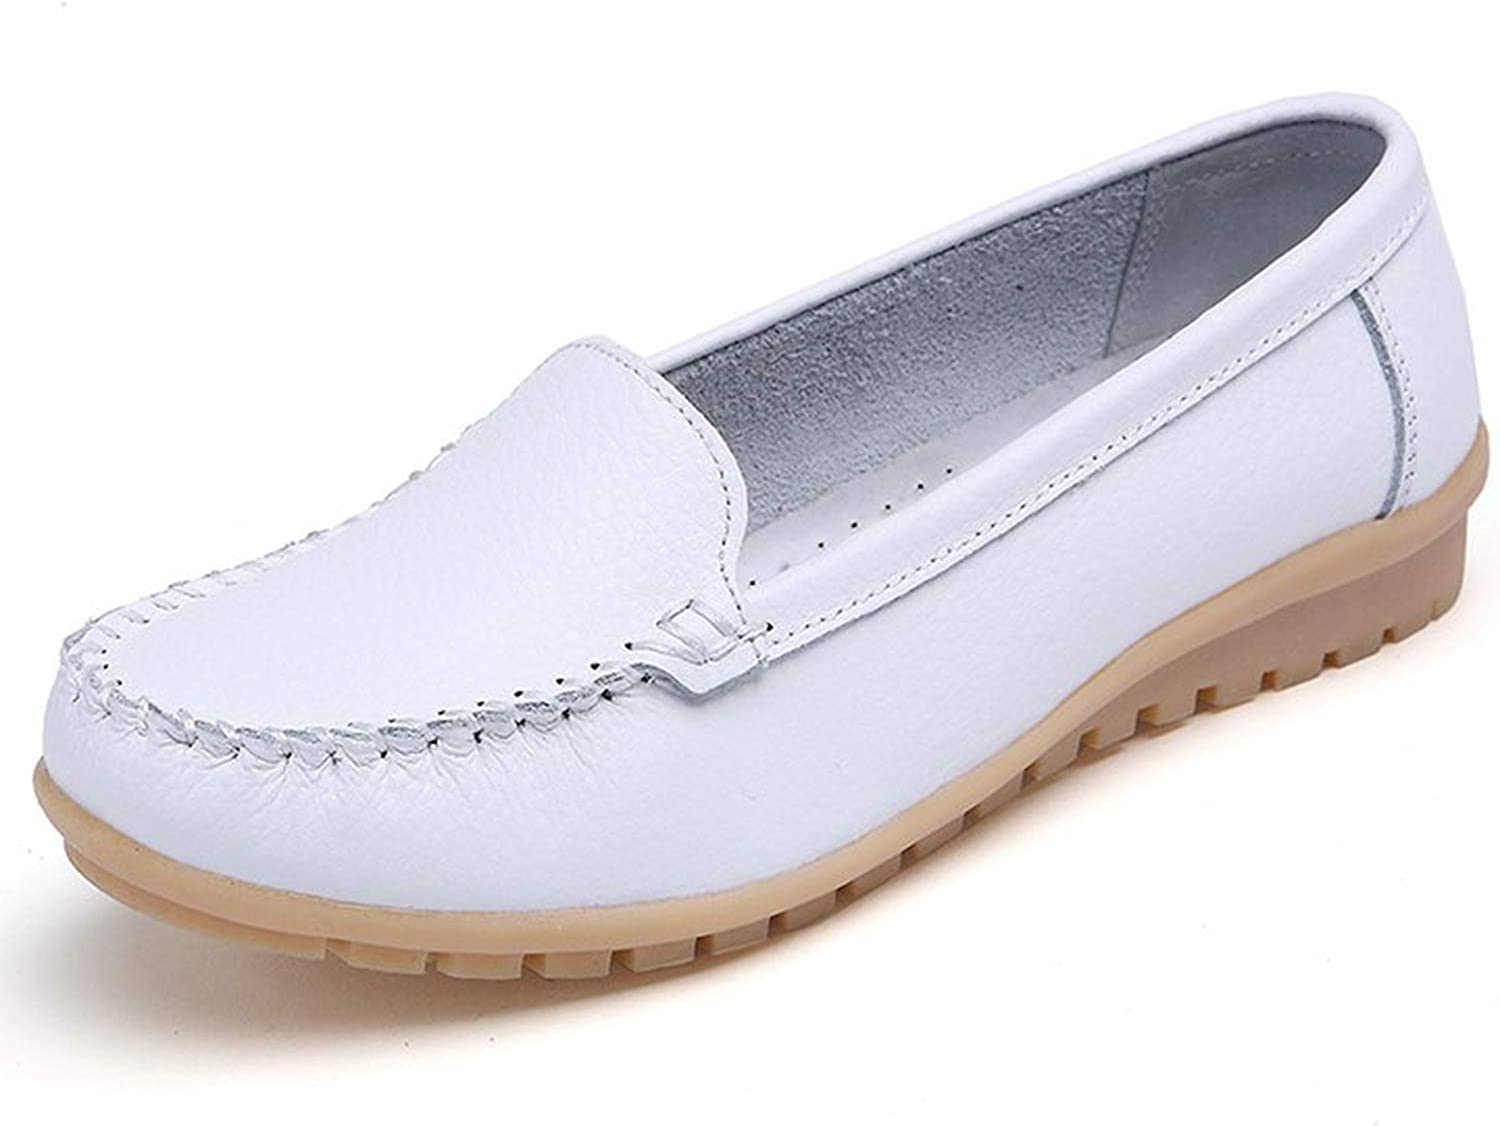 2019 Spring Women Flats shoes Women Genuine Leather shoes Woman Cutout Loafers Slip on Ballet Flats